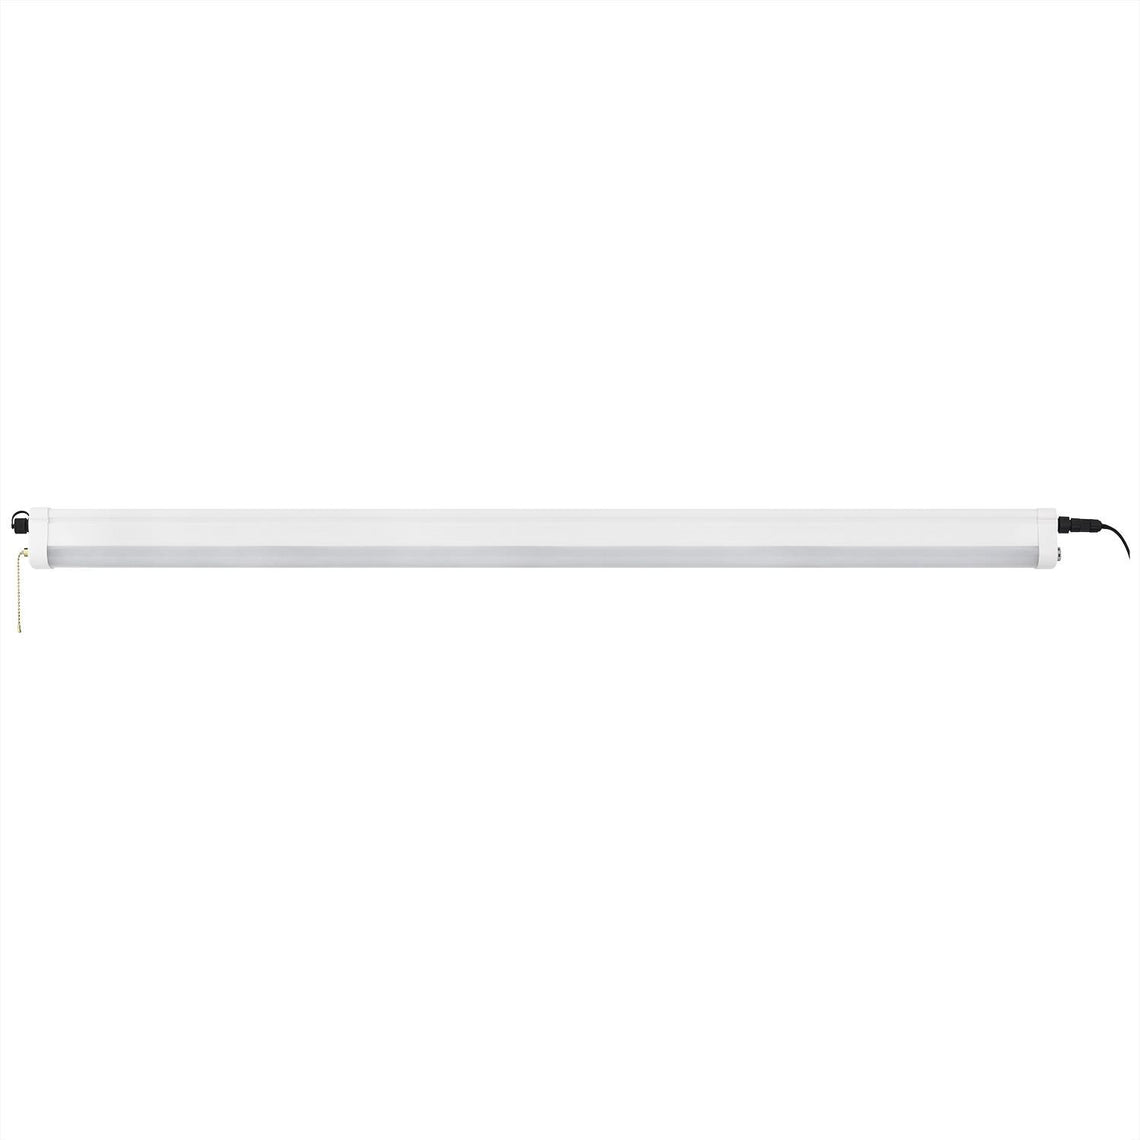 40W LED Linear Shop Light - 47.2-Inch - 4000Lm - 4000K - Plug-In - Linkable - ETL Listed - IP65 - White Finish